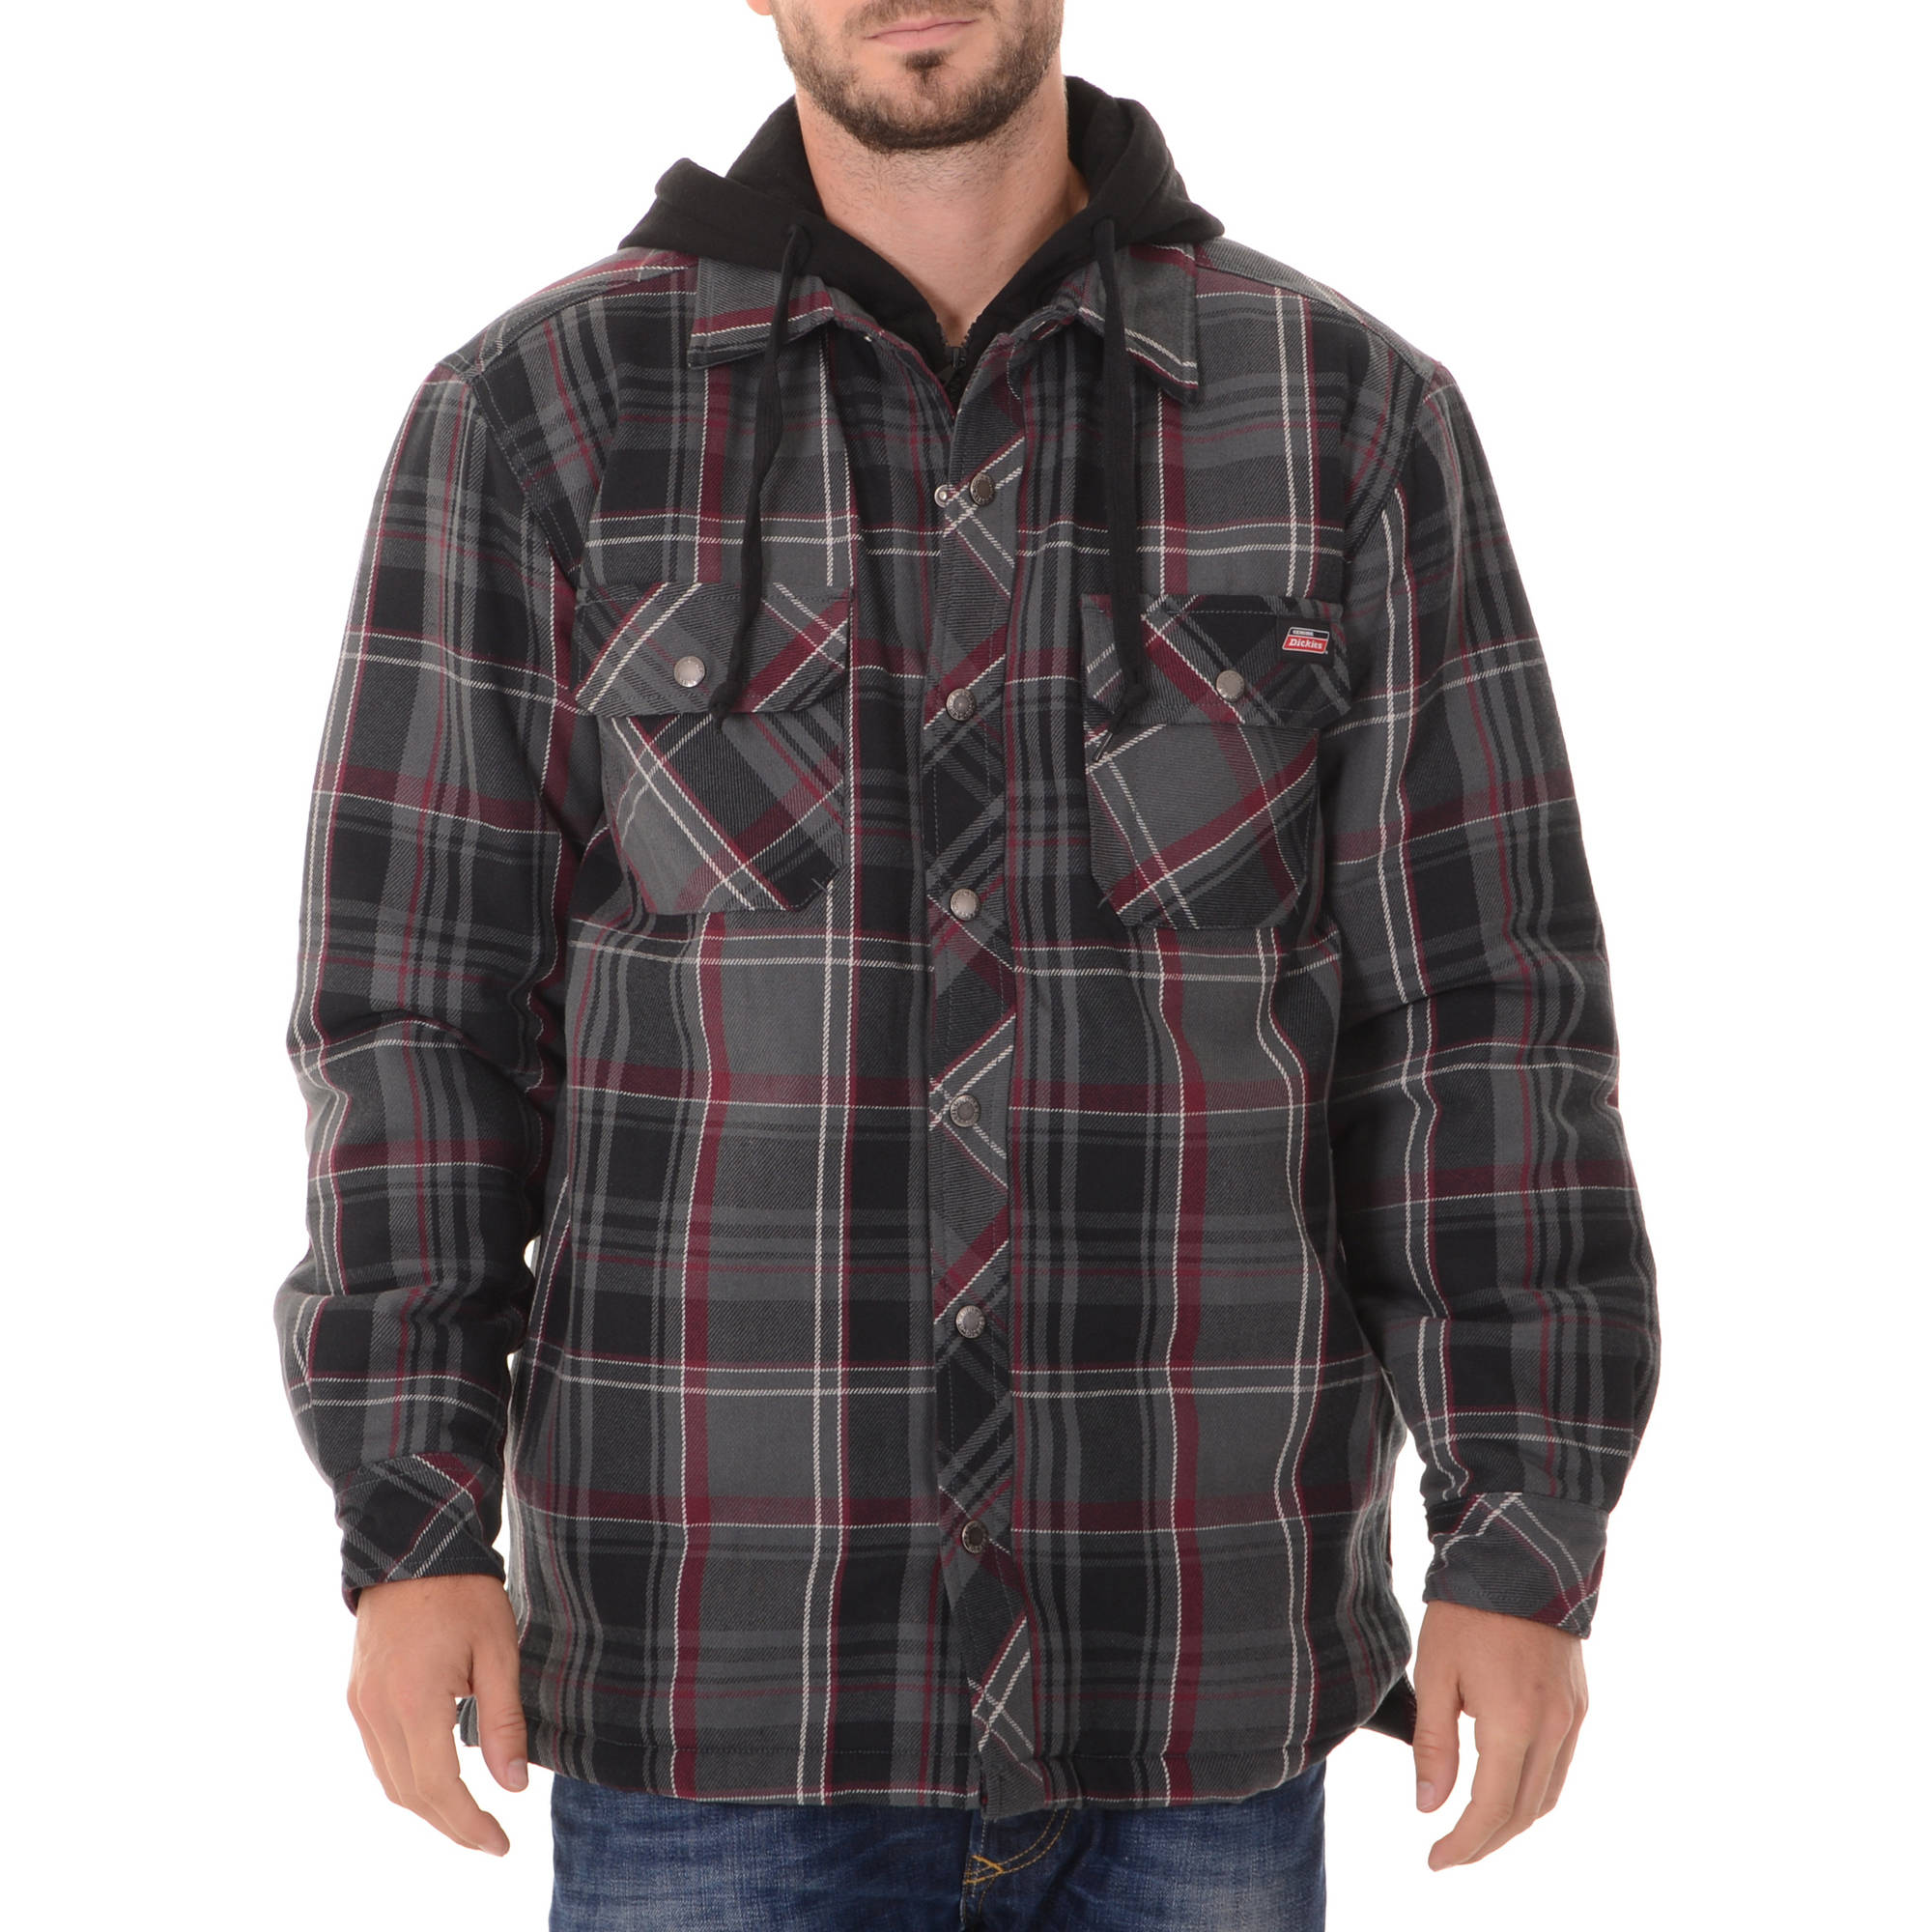 Dickies Men's Flannel Shirt Jacket - Walmart.com